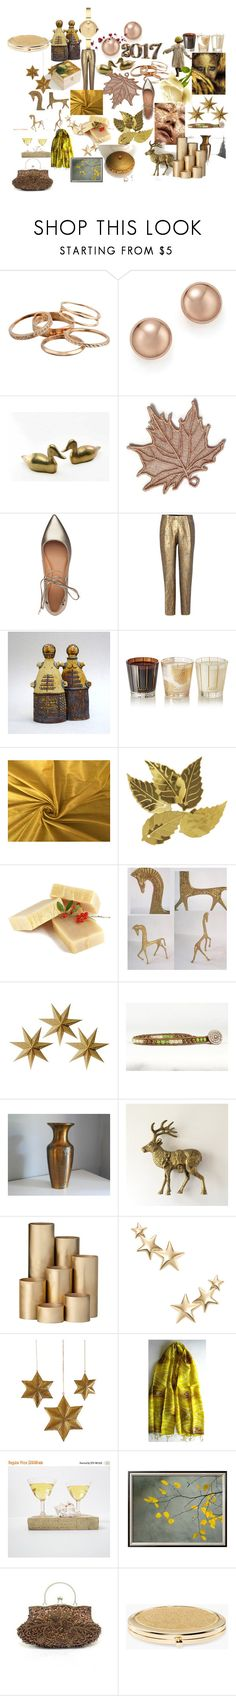 """""""GOLD"""" by talma-vardi ❤ liked on Polyvore featuring Kendra Scott, Bloomingdale's, Sigerson Morrison, Dries Van Noten, Nest Fragrances, JEM, Darice, MCM, LumaBase and ferm LIVING"""